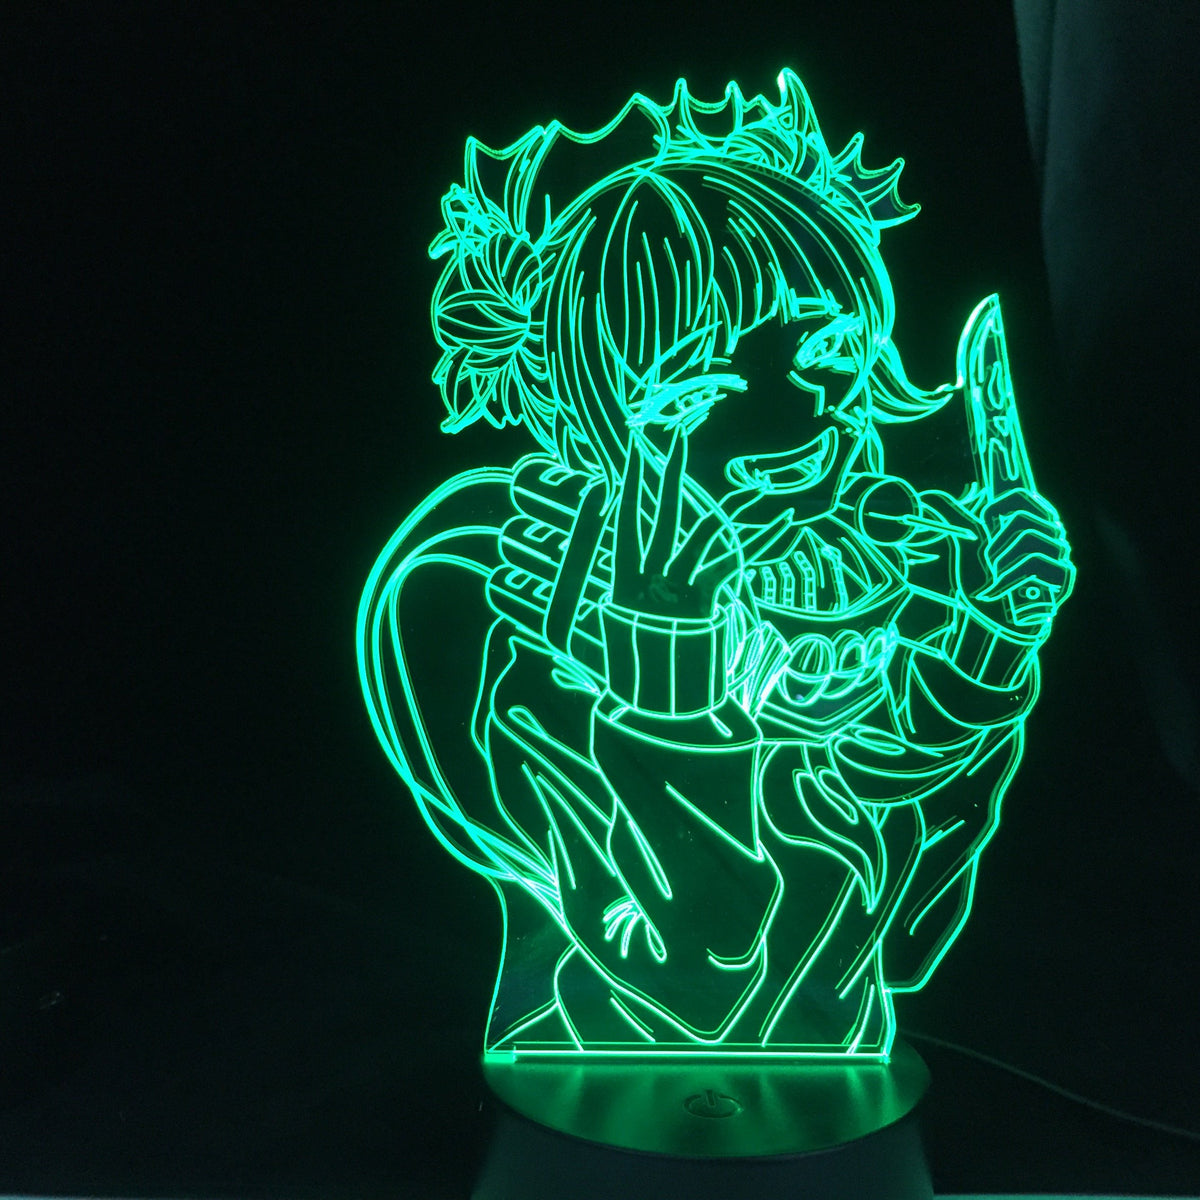 Himiko Toga knife Anime Lamp (My Hero Academia) KonohaLampCo